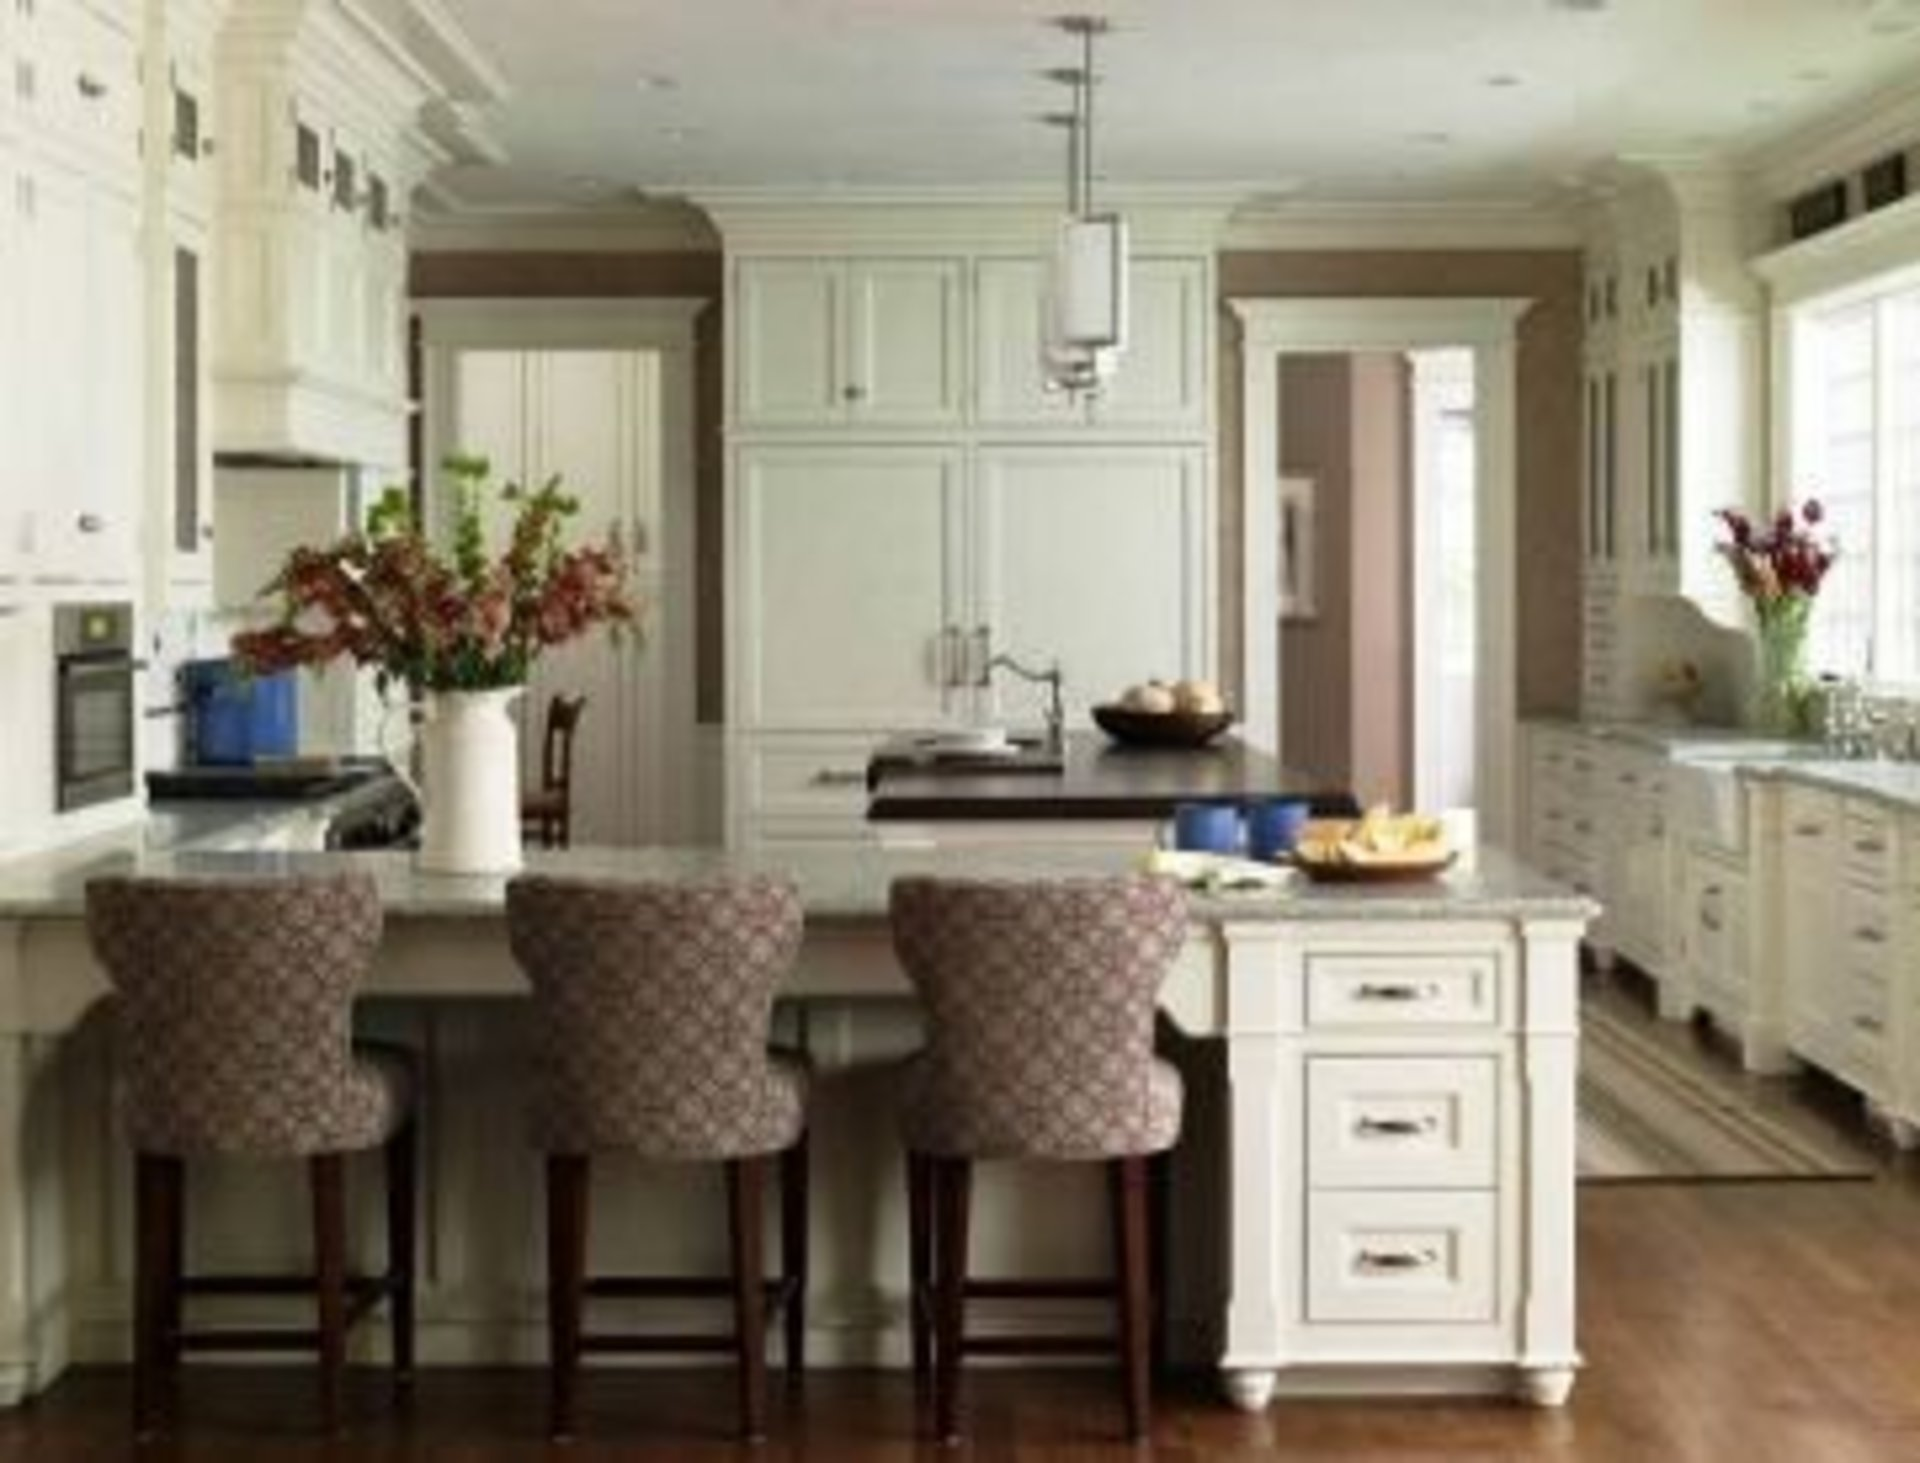 luxury vintage kitchen design trends archives page 4 of 4